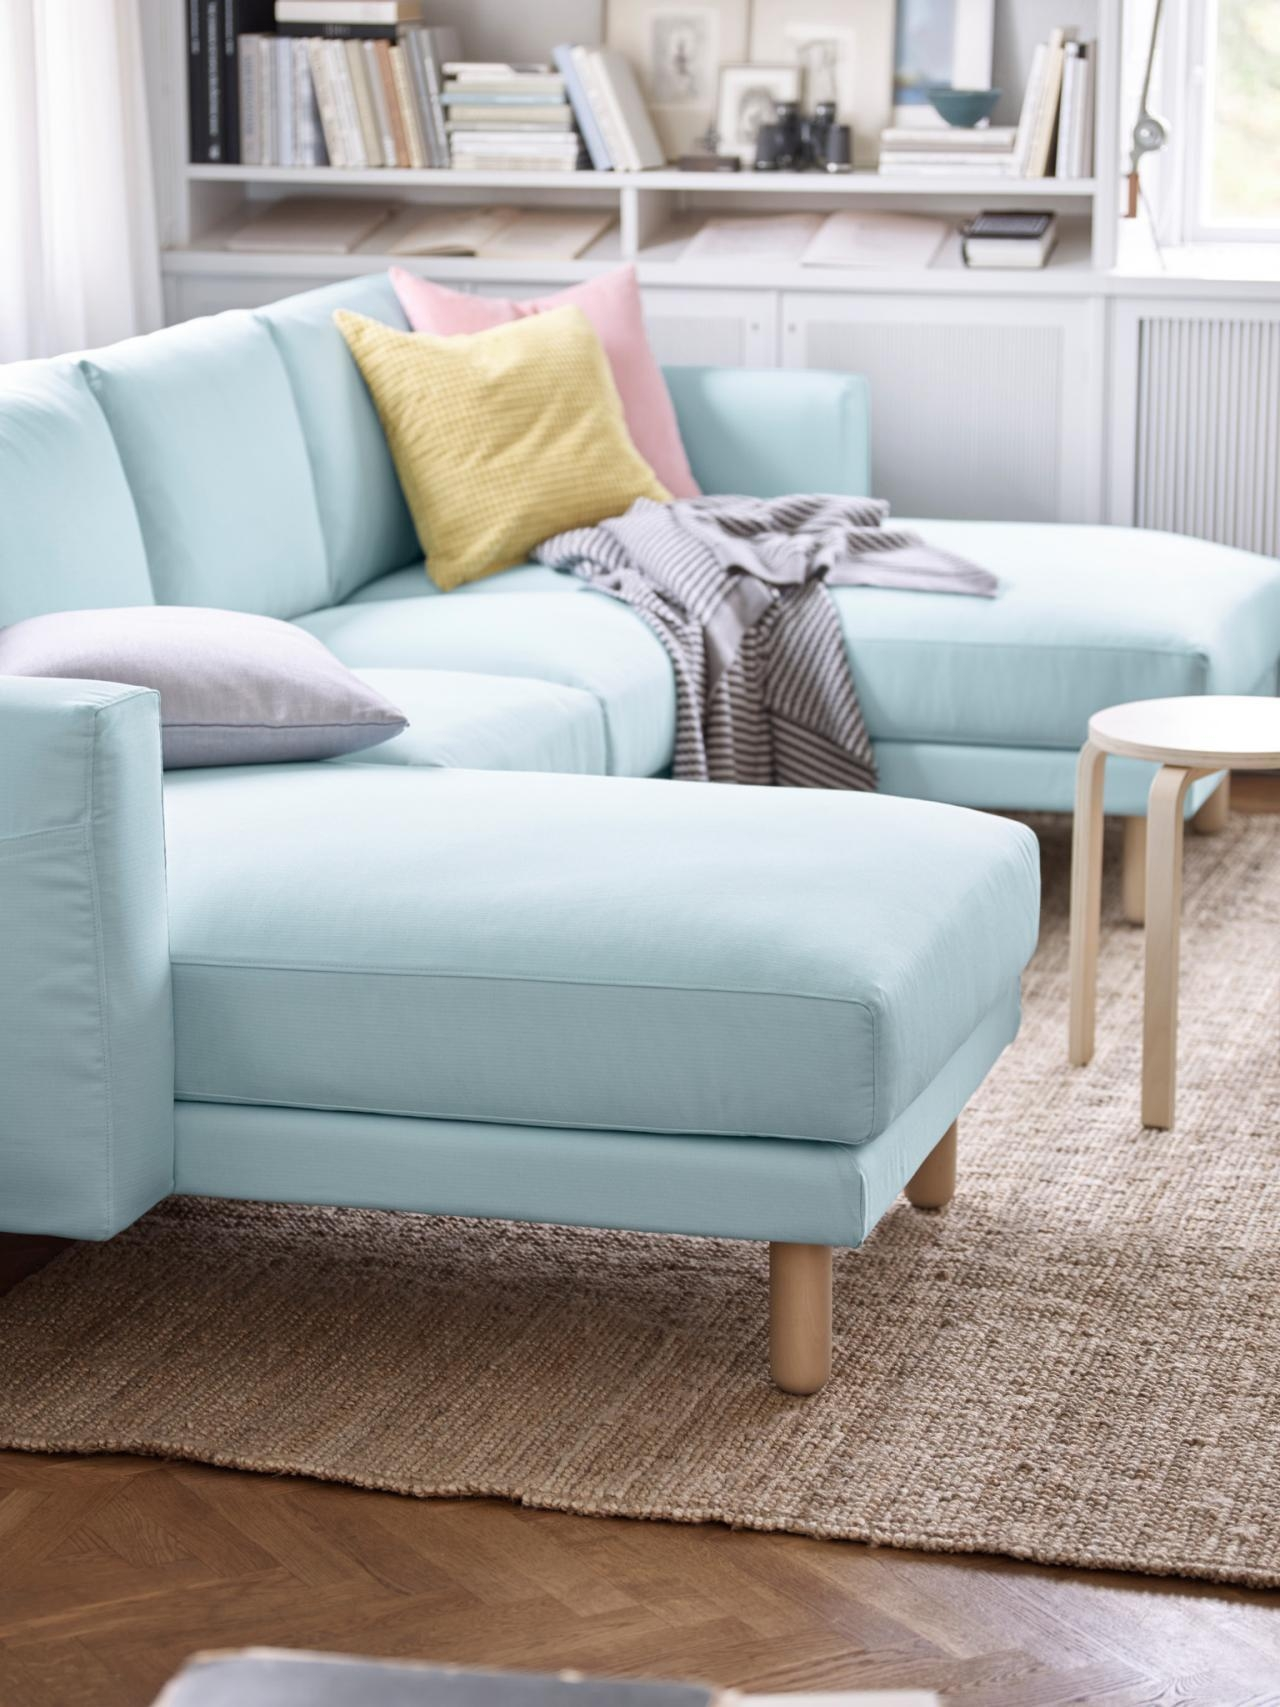 5 Apartment Sized Sofas That Are Lifesavers | Hgtv's Decorating Within 68 Inch Sofas (Image 3 of 20)